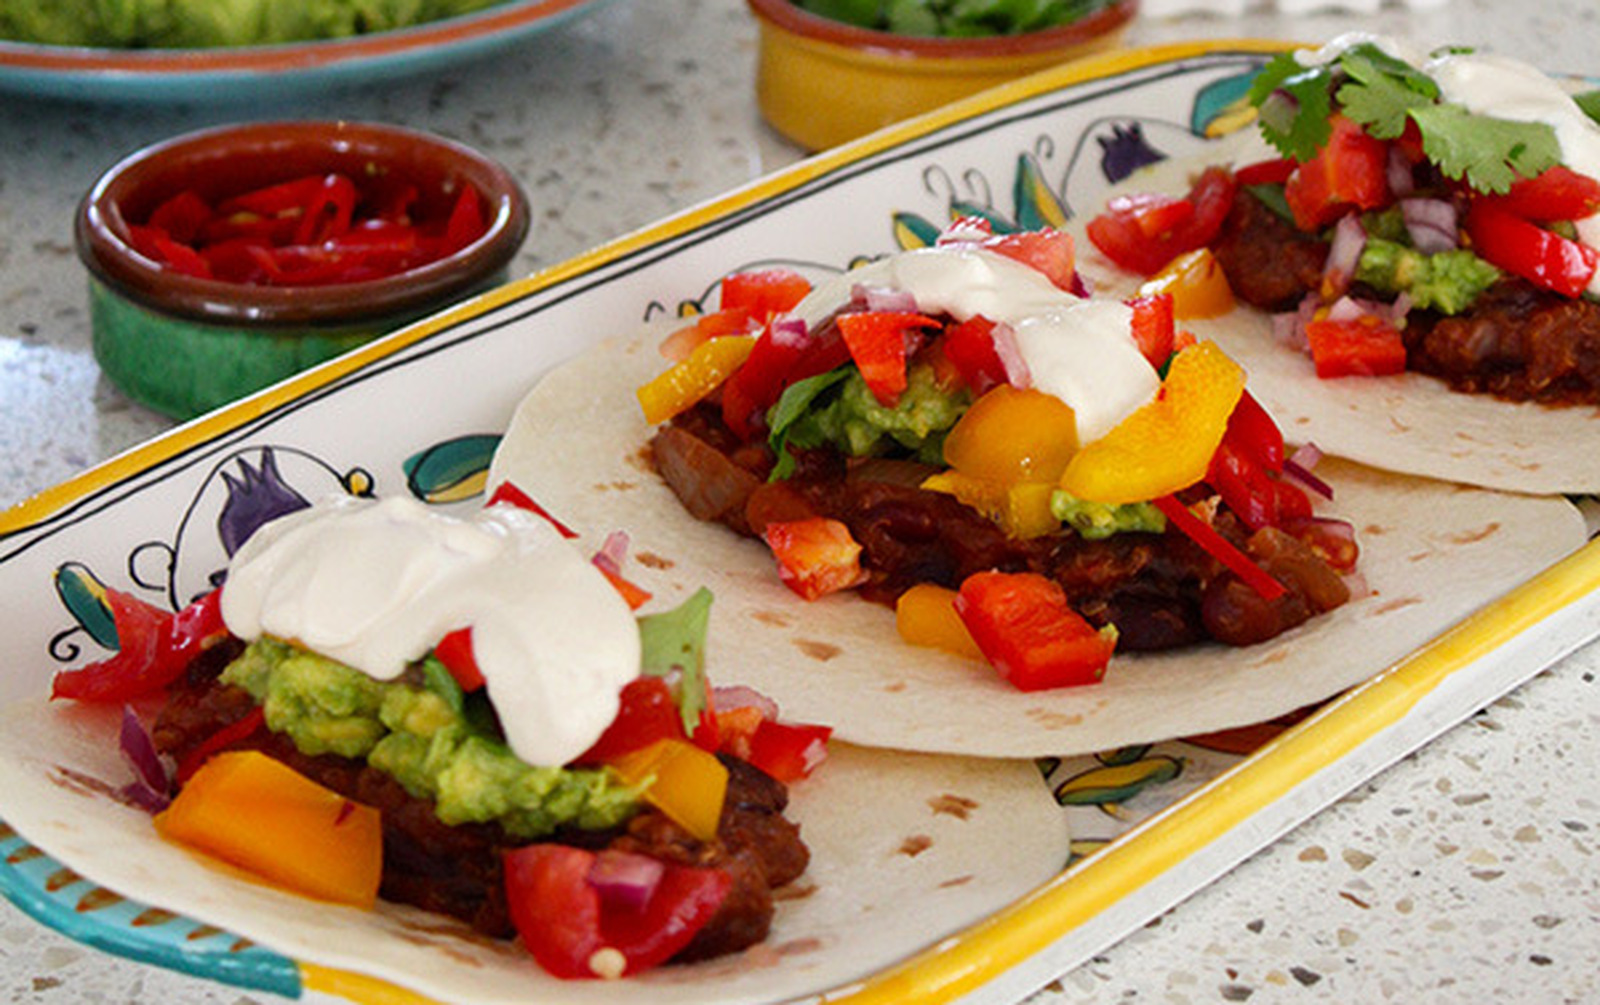 Slow-Cooker Mexican Tacos With Guacamole and Salsa [Vegan, Gluten-Free]